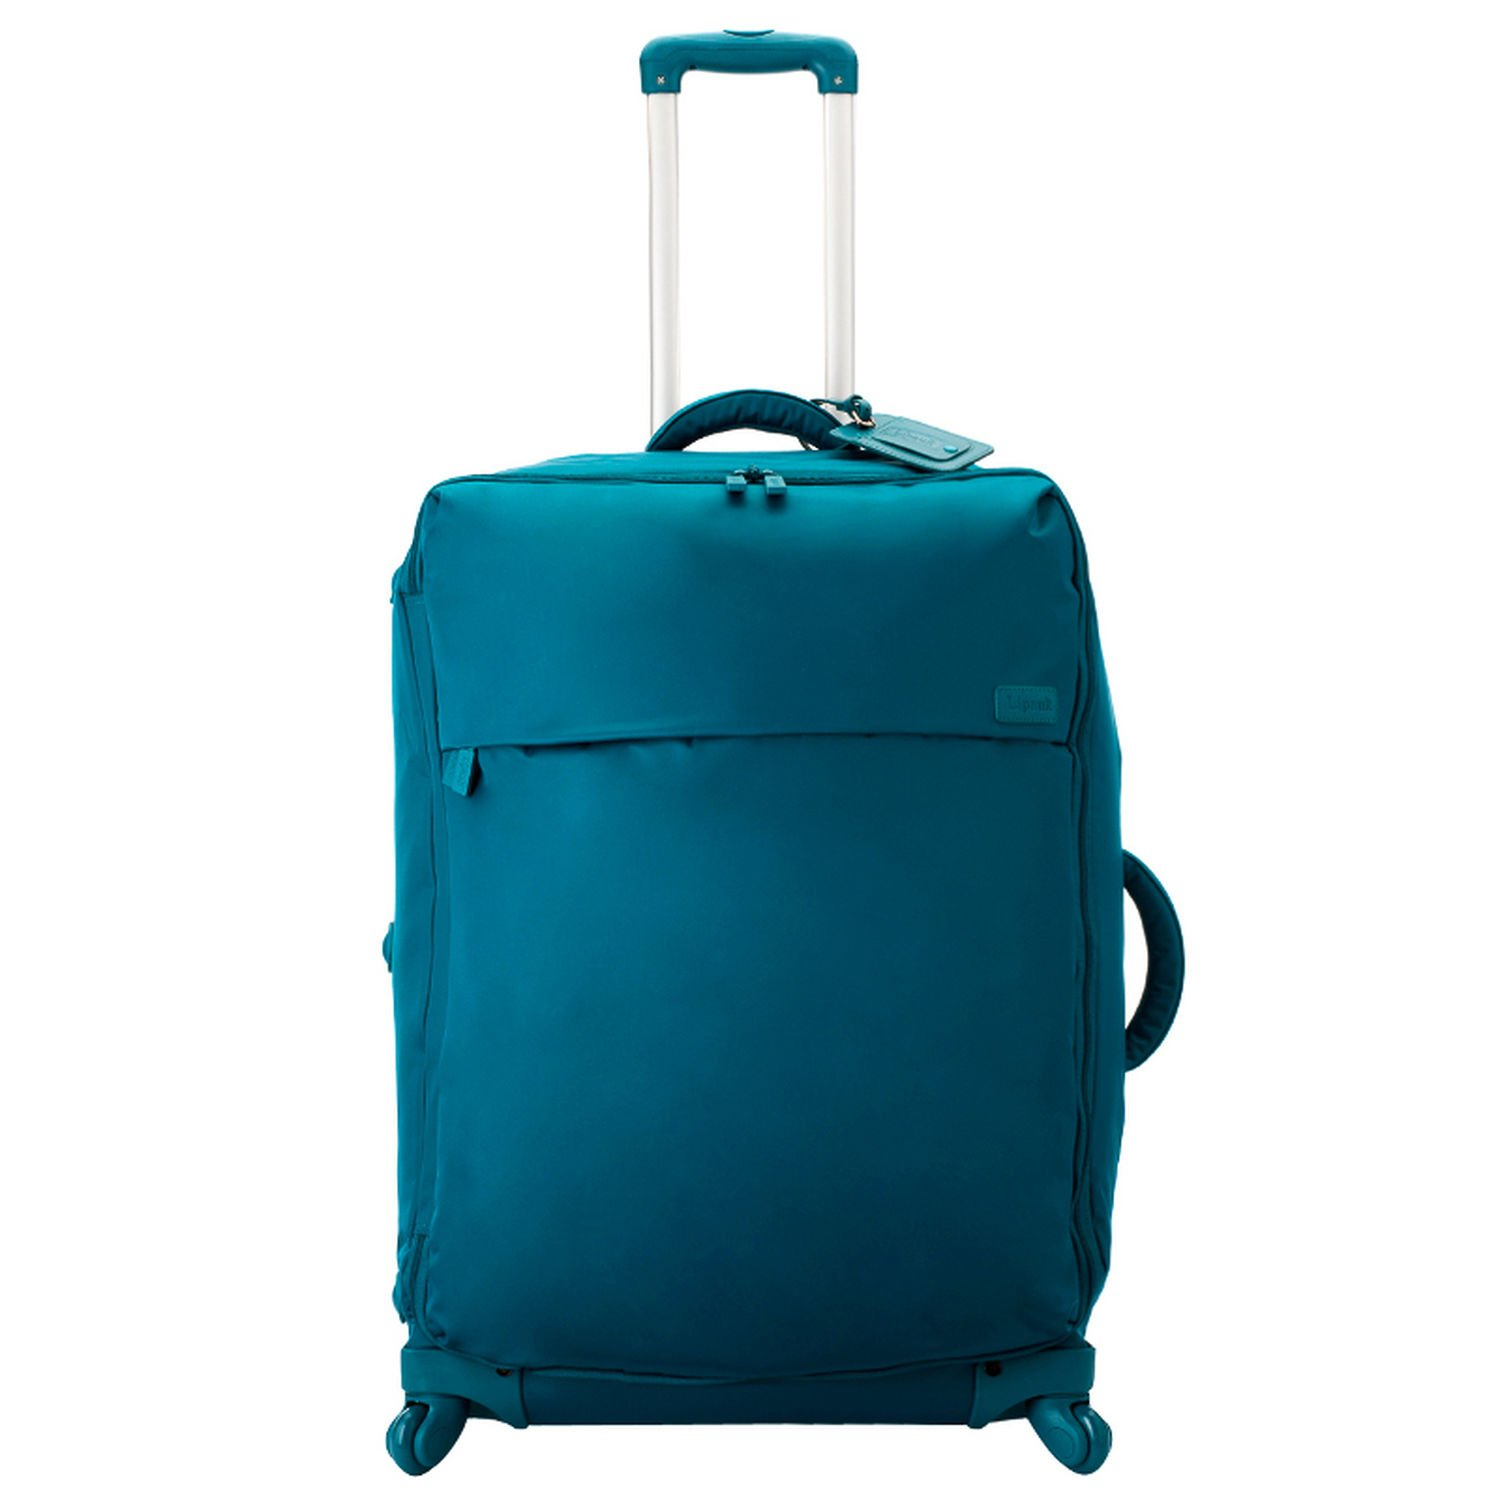 Lipault Original Plume 26'' Spinner Suitcase, Nylon Rolling Luggage in Duck Blue